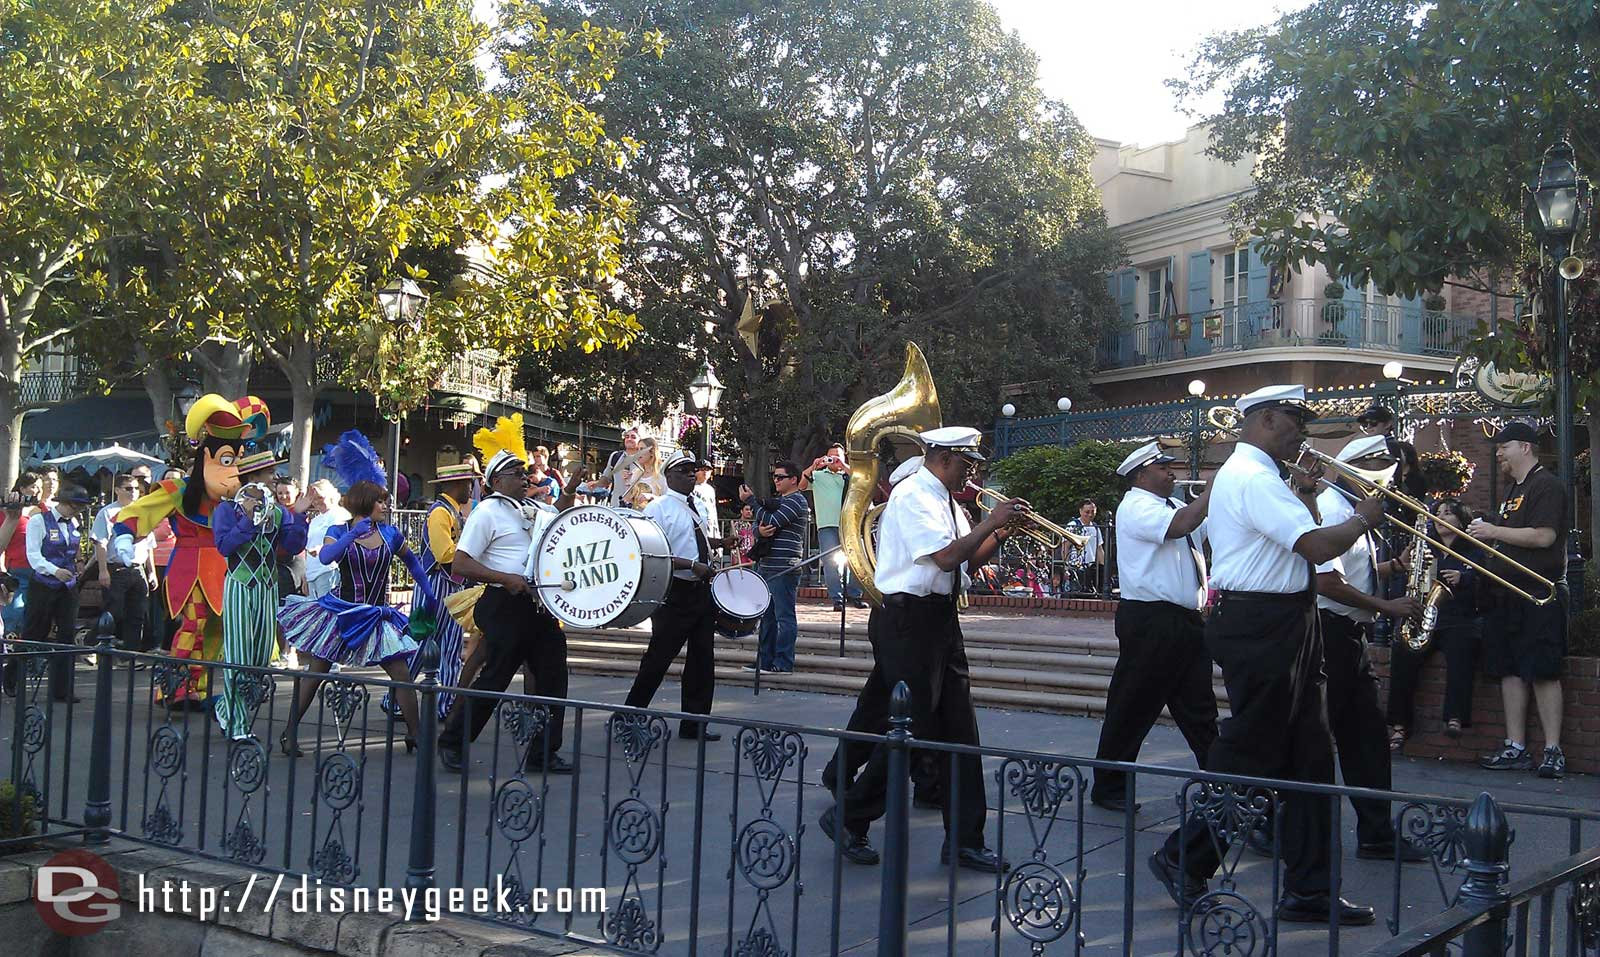 The New Orleans Bayou Bash has a few weekends left in its #LimitedTimeMagic run